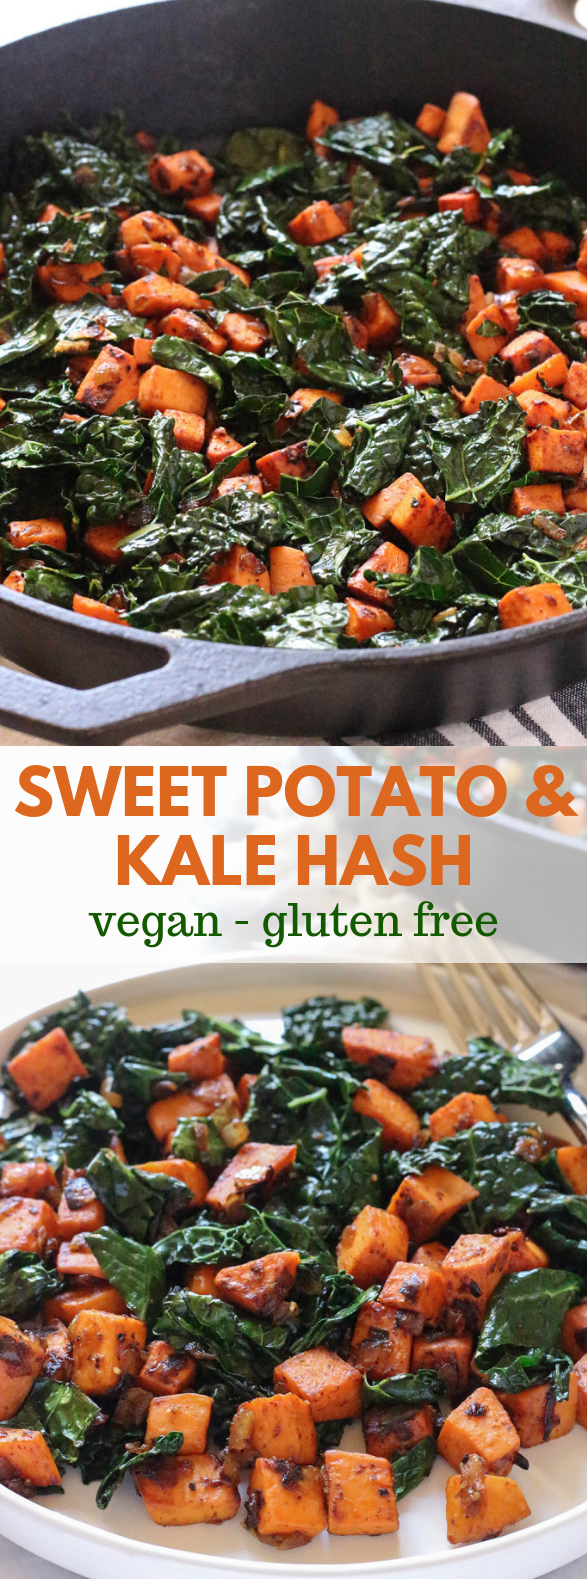 Sweet Potato and Kale Hash #healthy #food